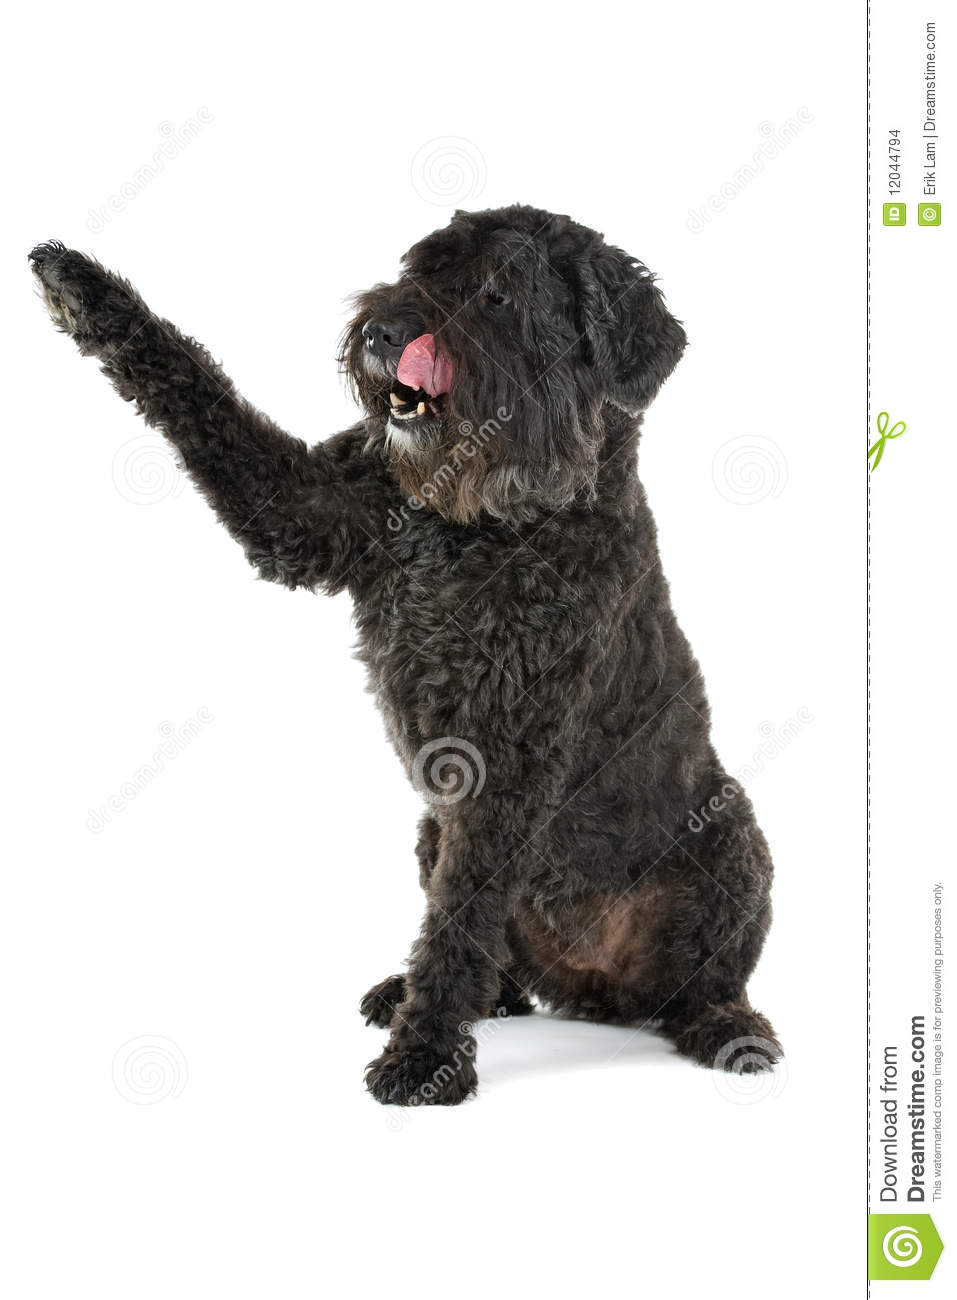 Bouvier Des Flandres Stock Images.